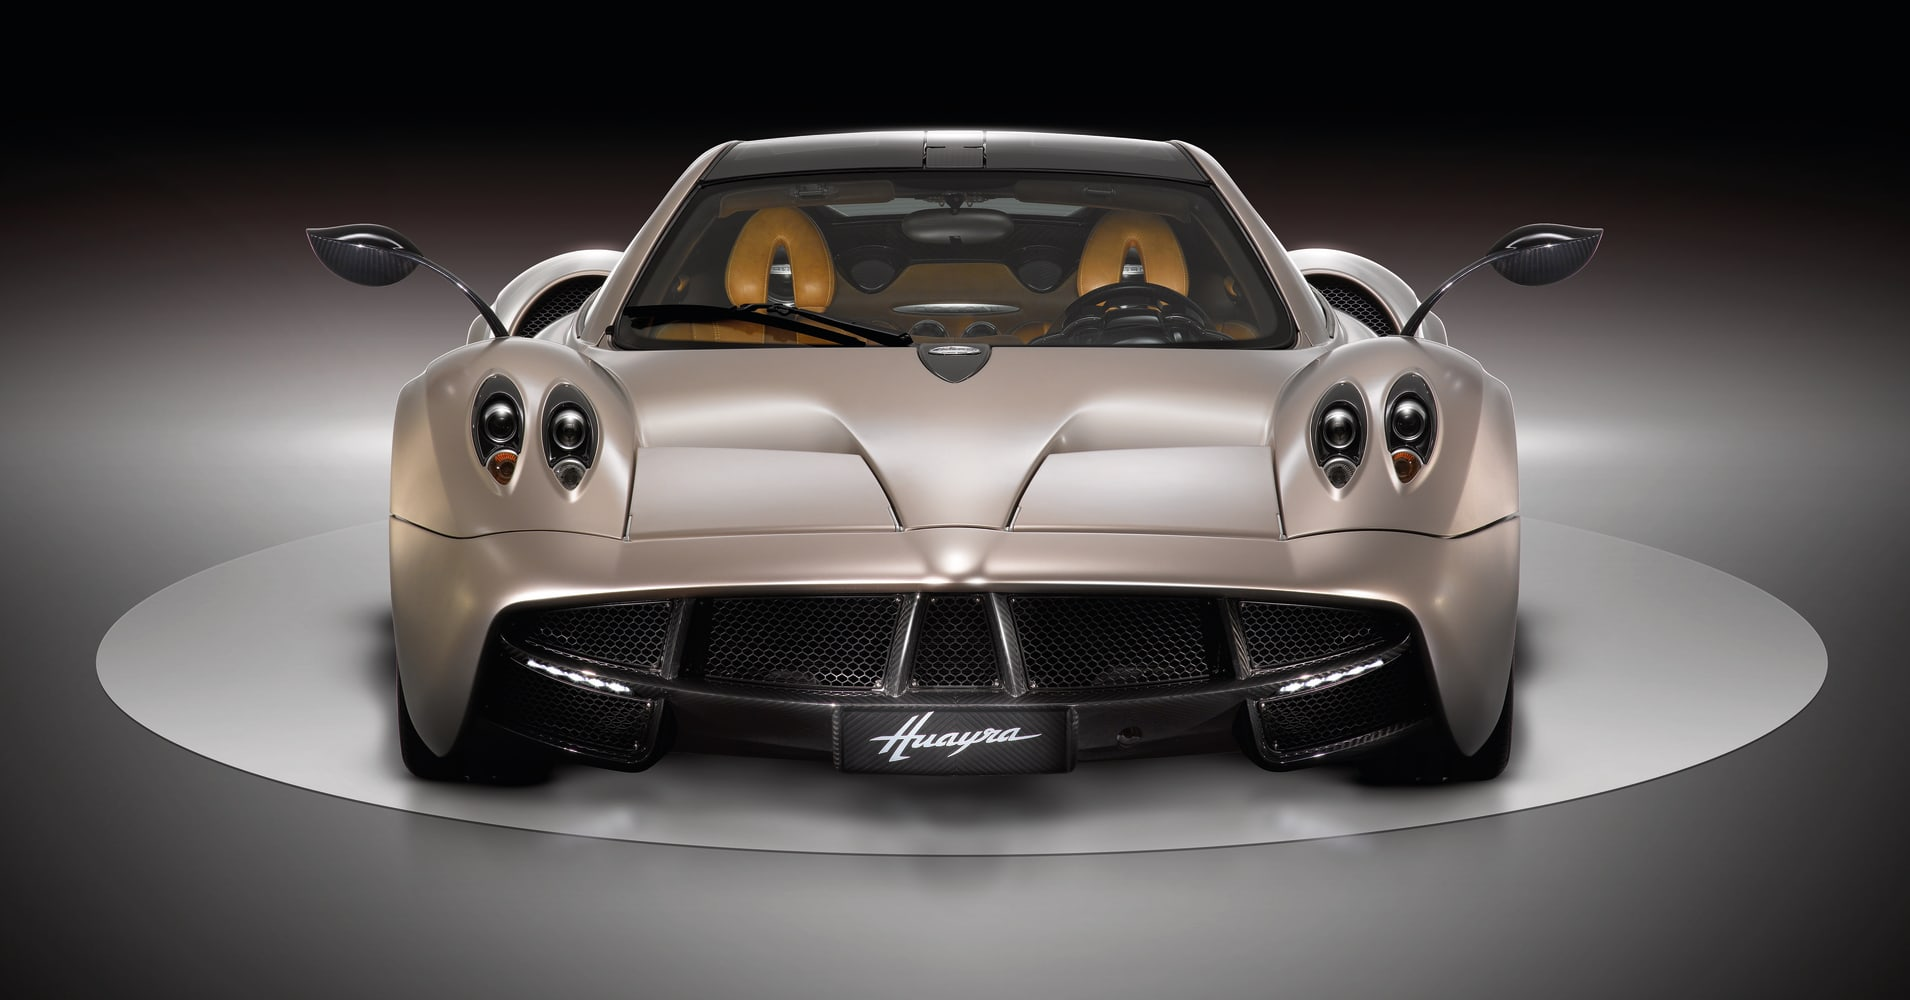 Must-Have Super Car: $1.6 Million and Not Yet Legal